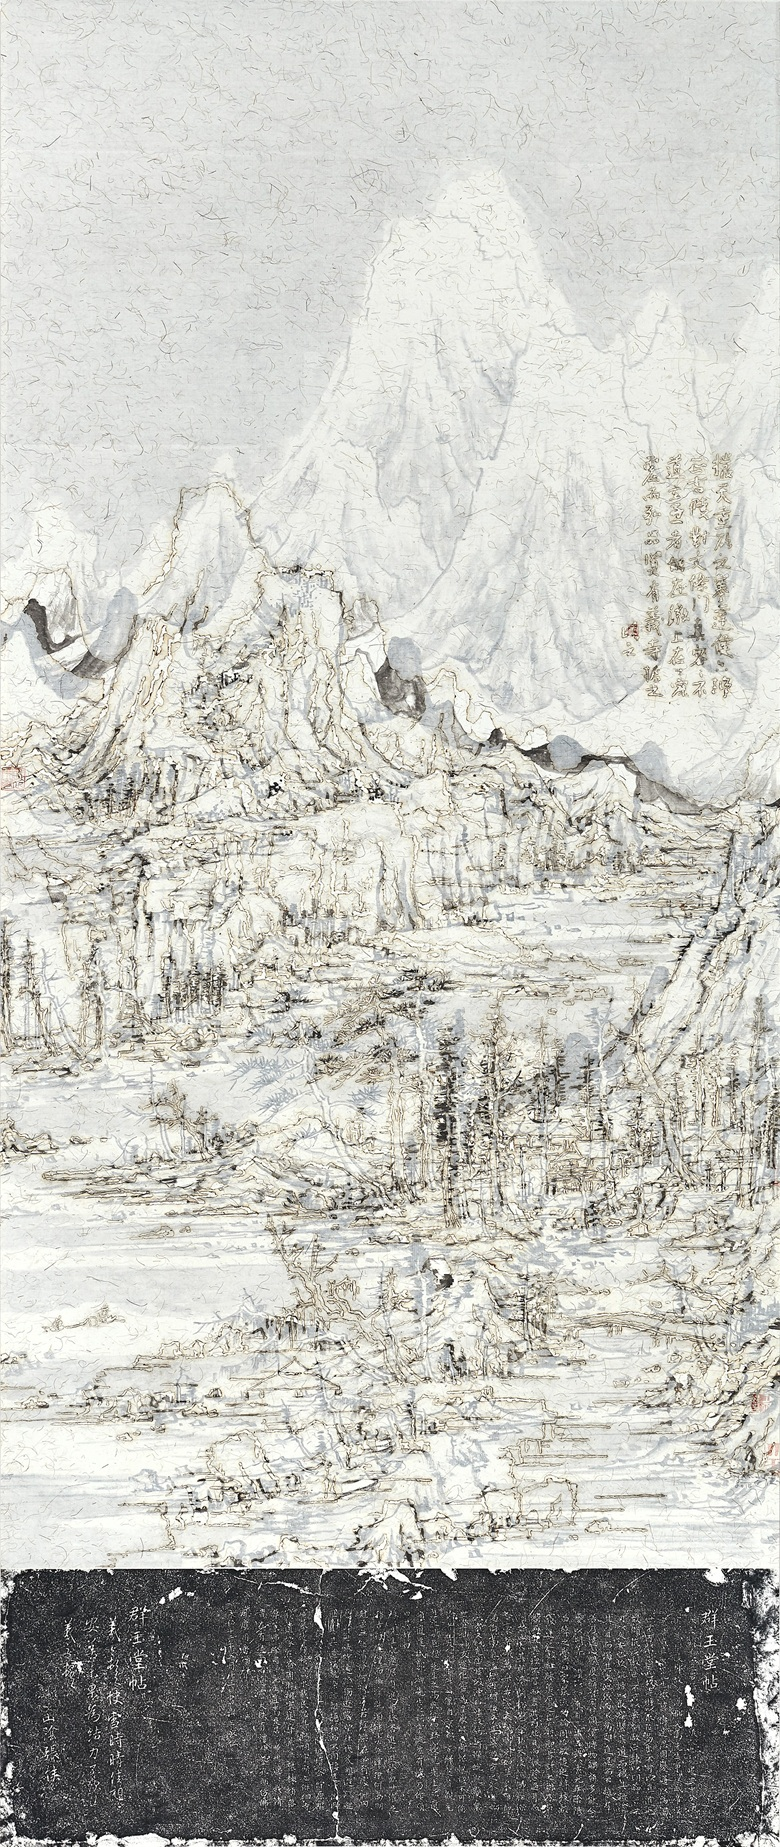 Wang Tiande (b. 1960), Tranquil Vista, 2015. Ink and mixed media on paper. 84 × 35¼ in (213.5 × 89.5  cm). Sold for CNY576,000 on 21 September 2019 at Christie's in Shanghai